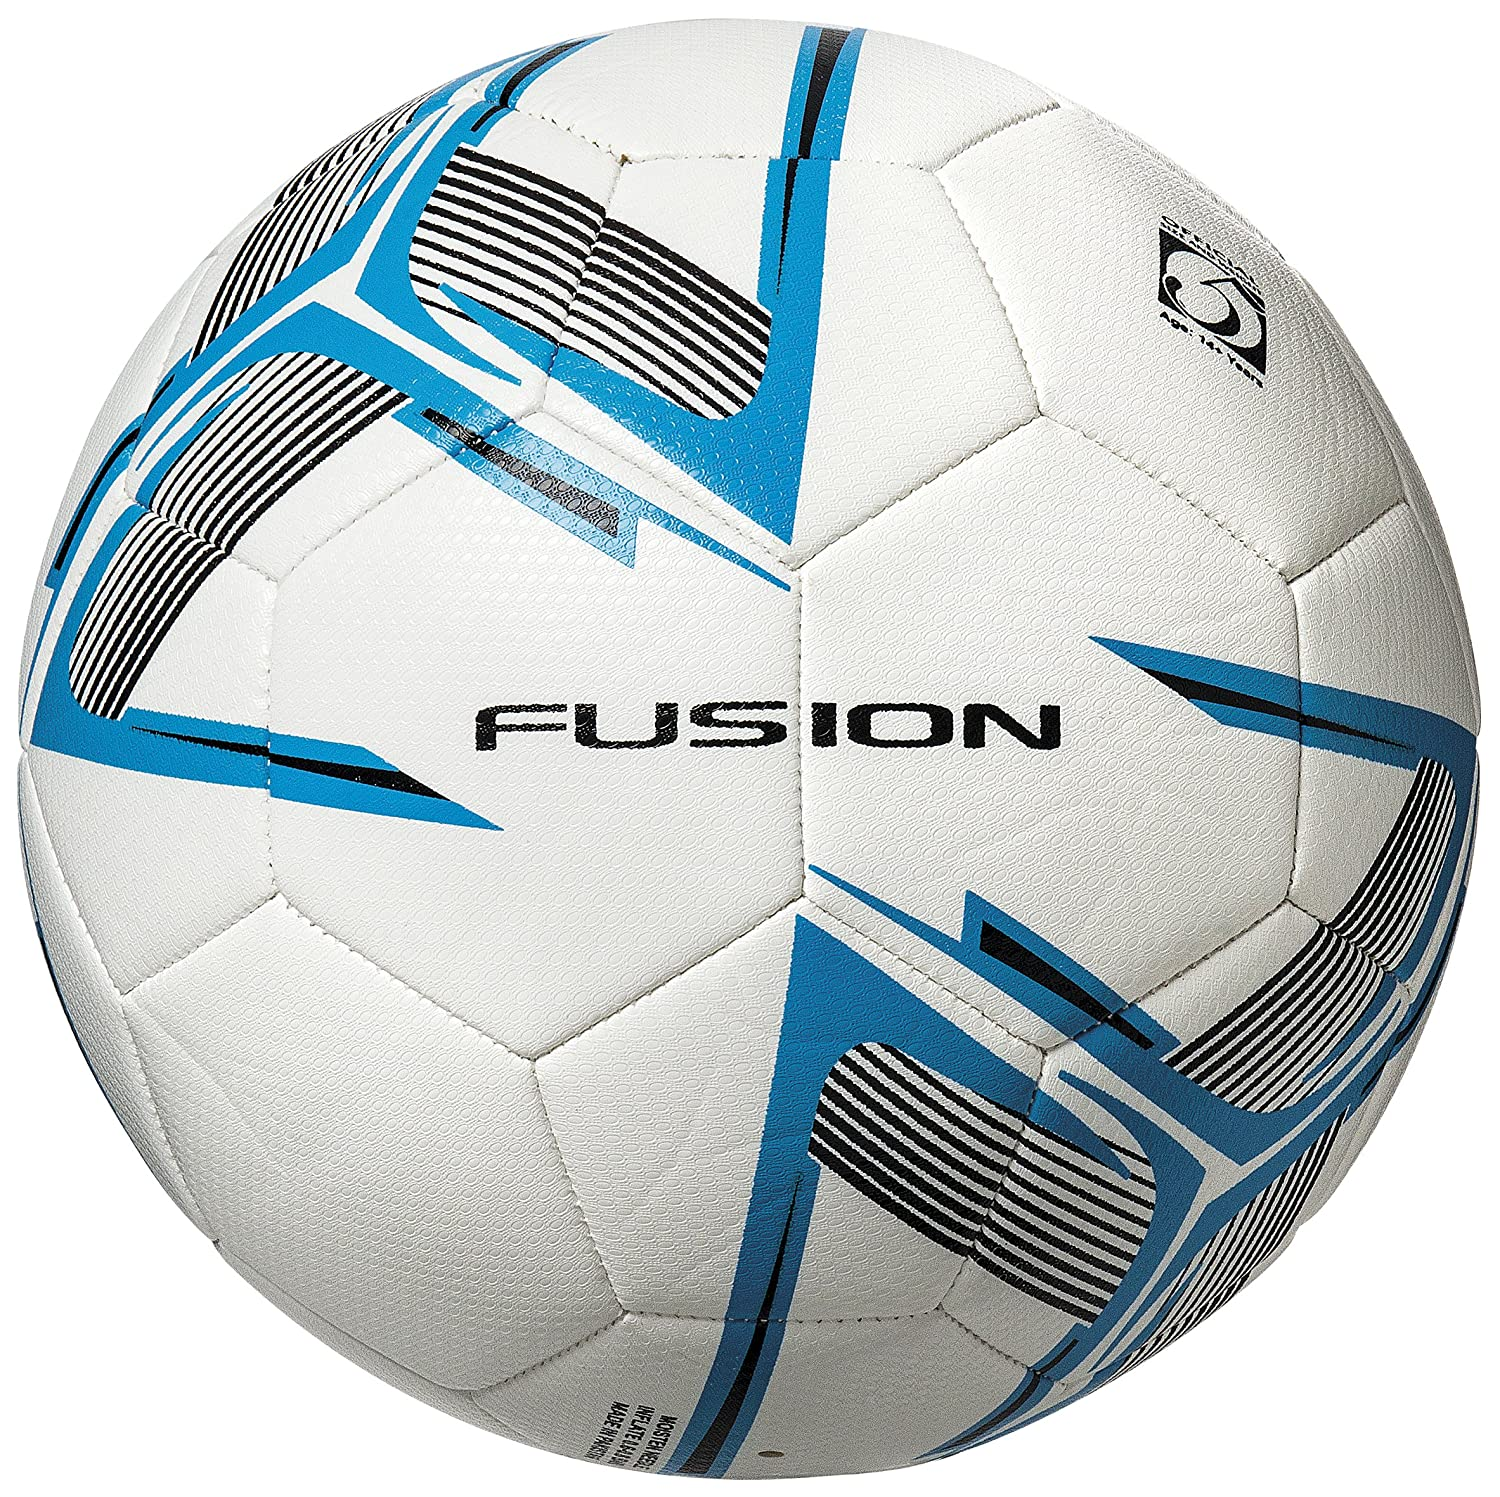 10x Precision Fusion Match Training Ball White/Blue/Black Size 3 Football